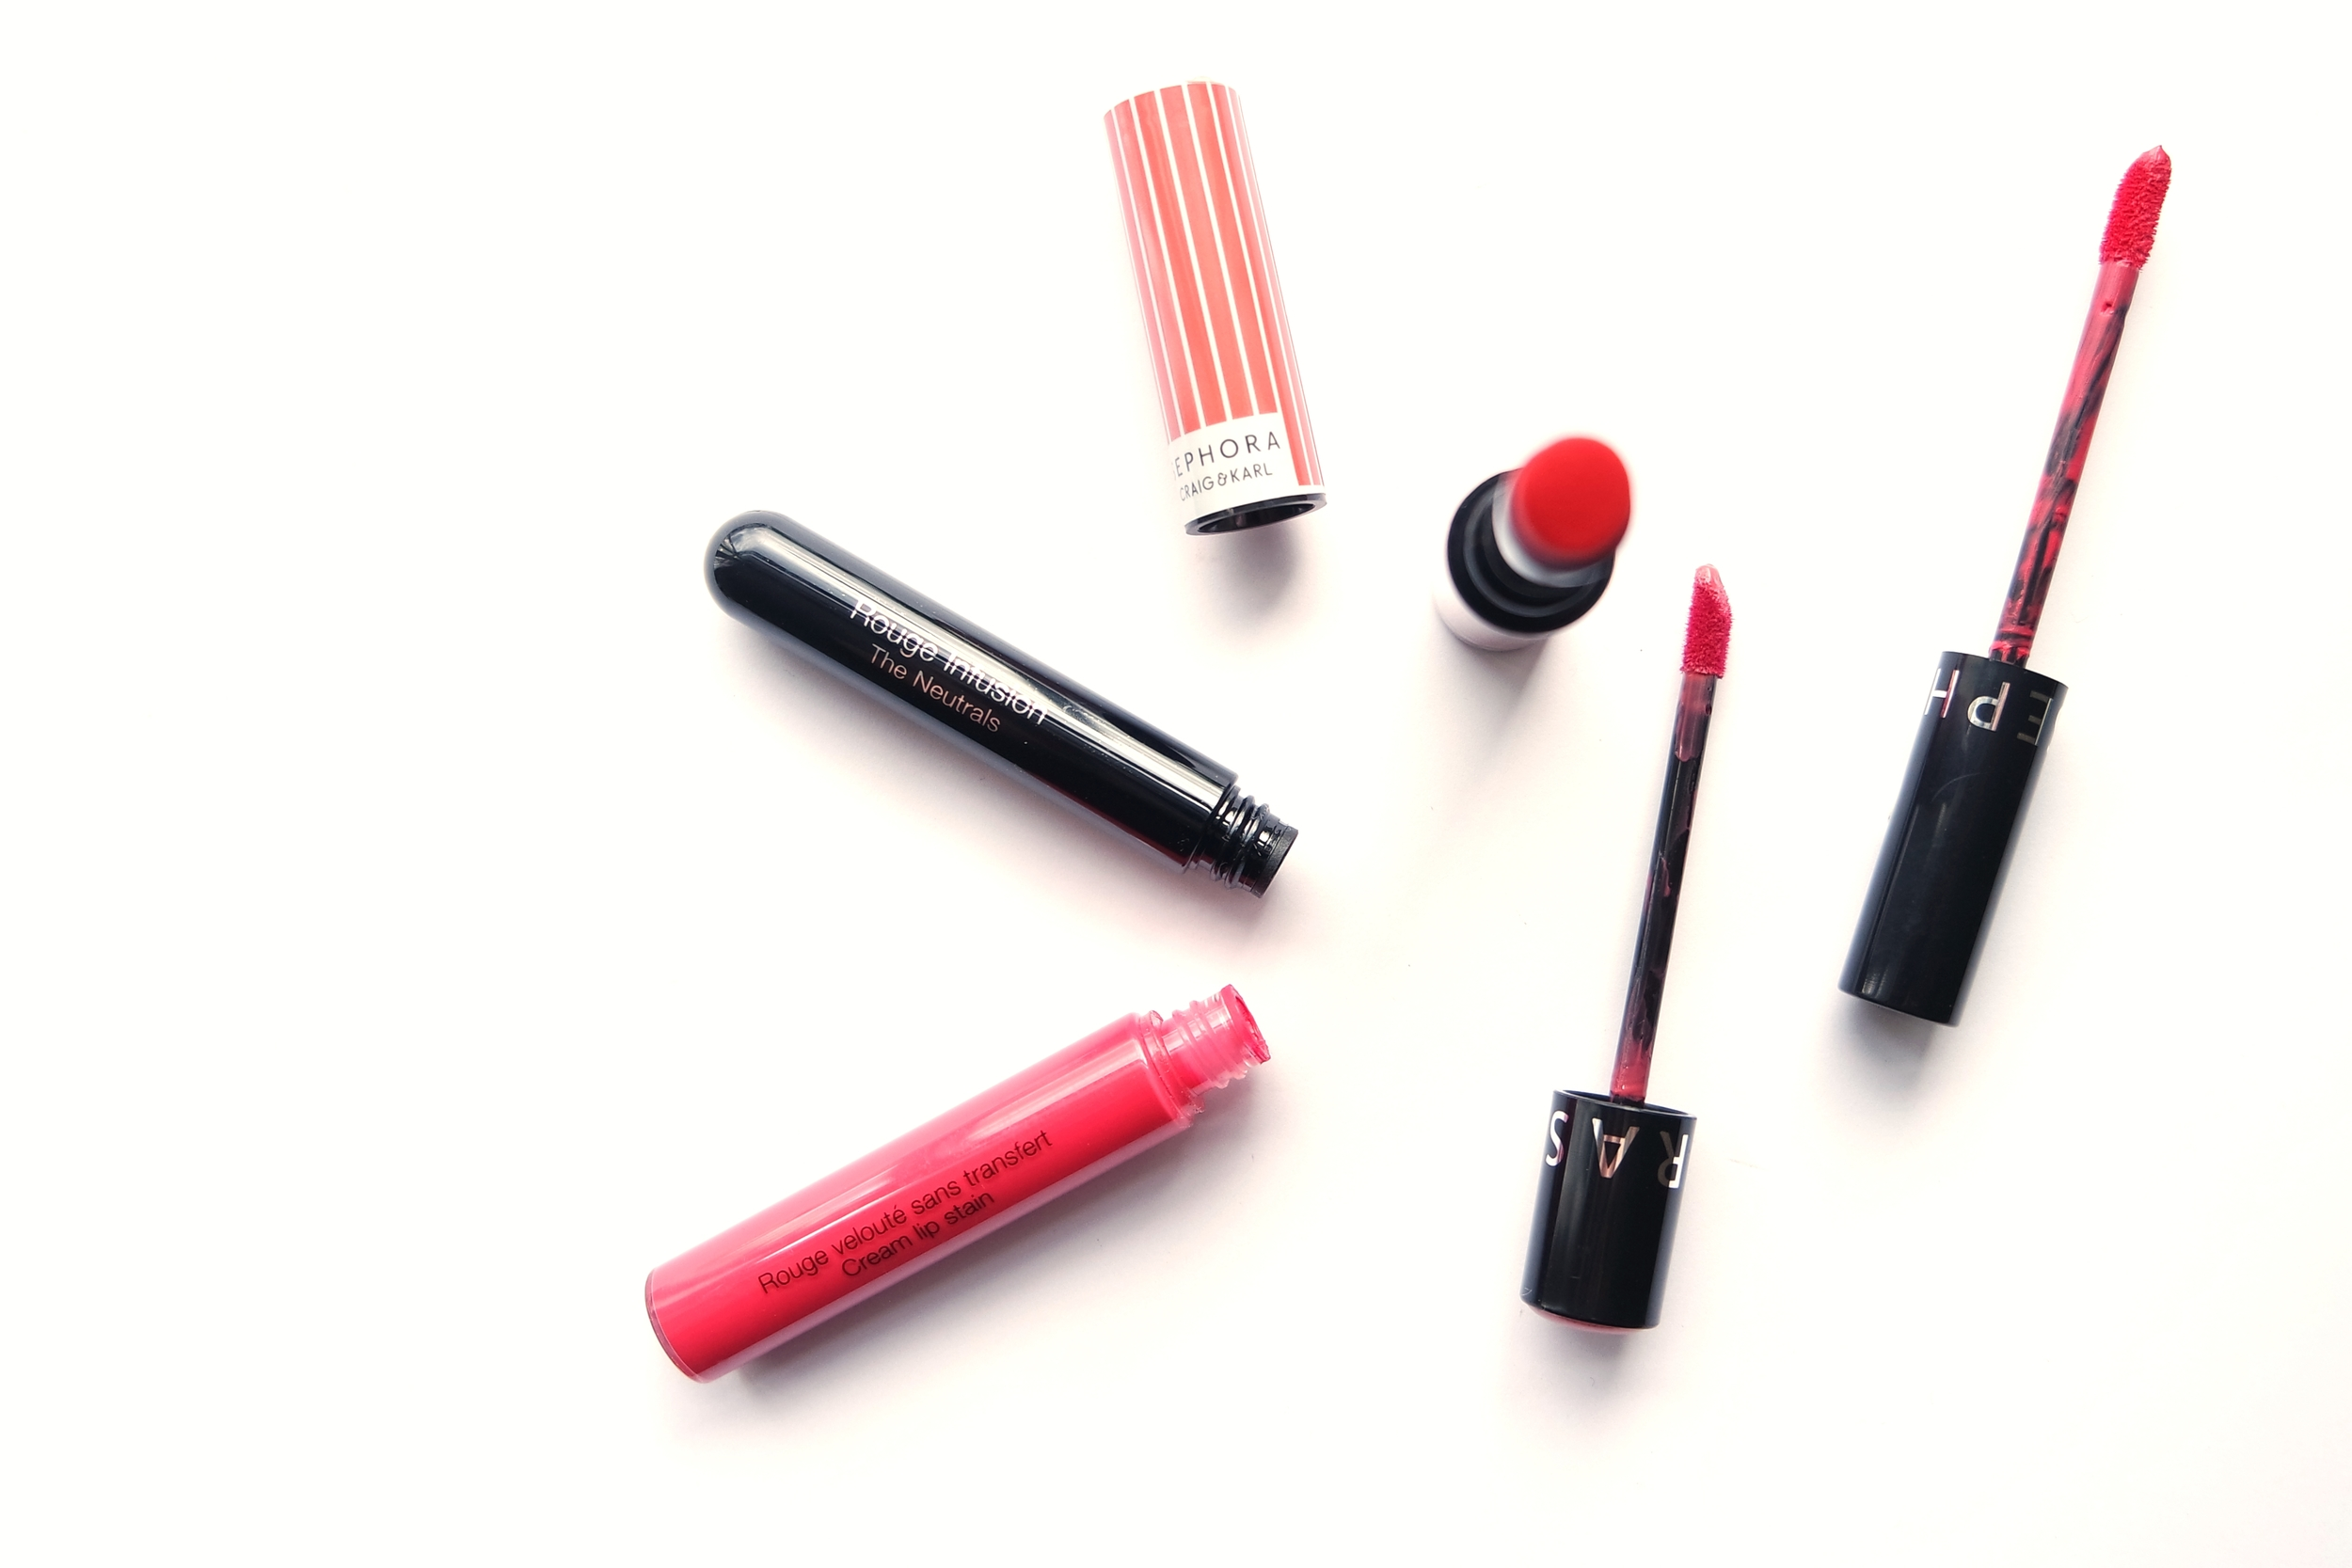 Sephora own brand lip products:Cream Lip Stain in 03 Strawberry Kissed, Rouge Infusion in 19 Peony, and Craig & Karl Lip Color Last in West End Swirl.